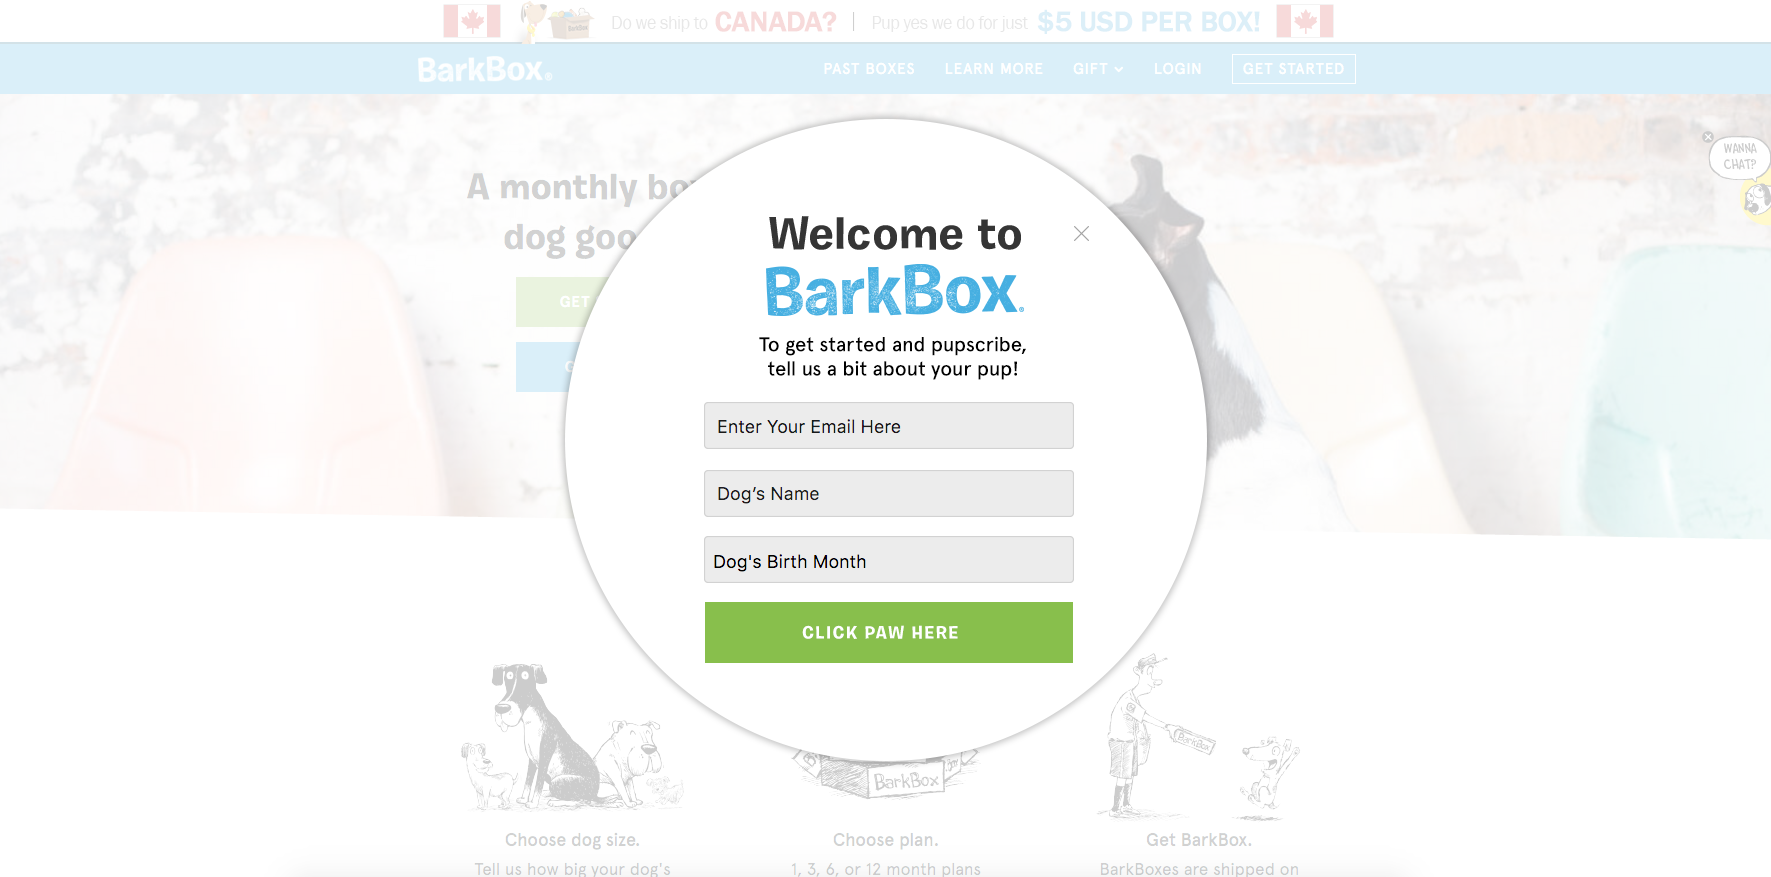 barkbox pop up